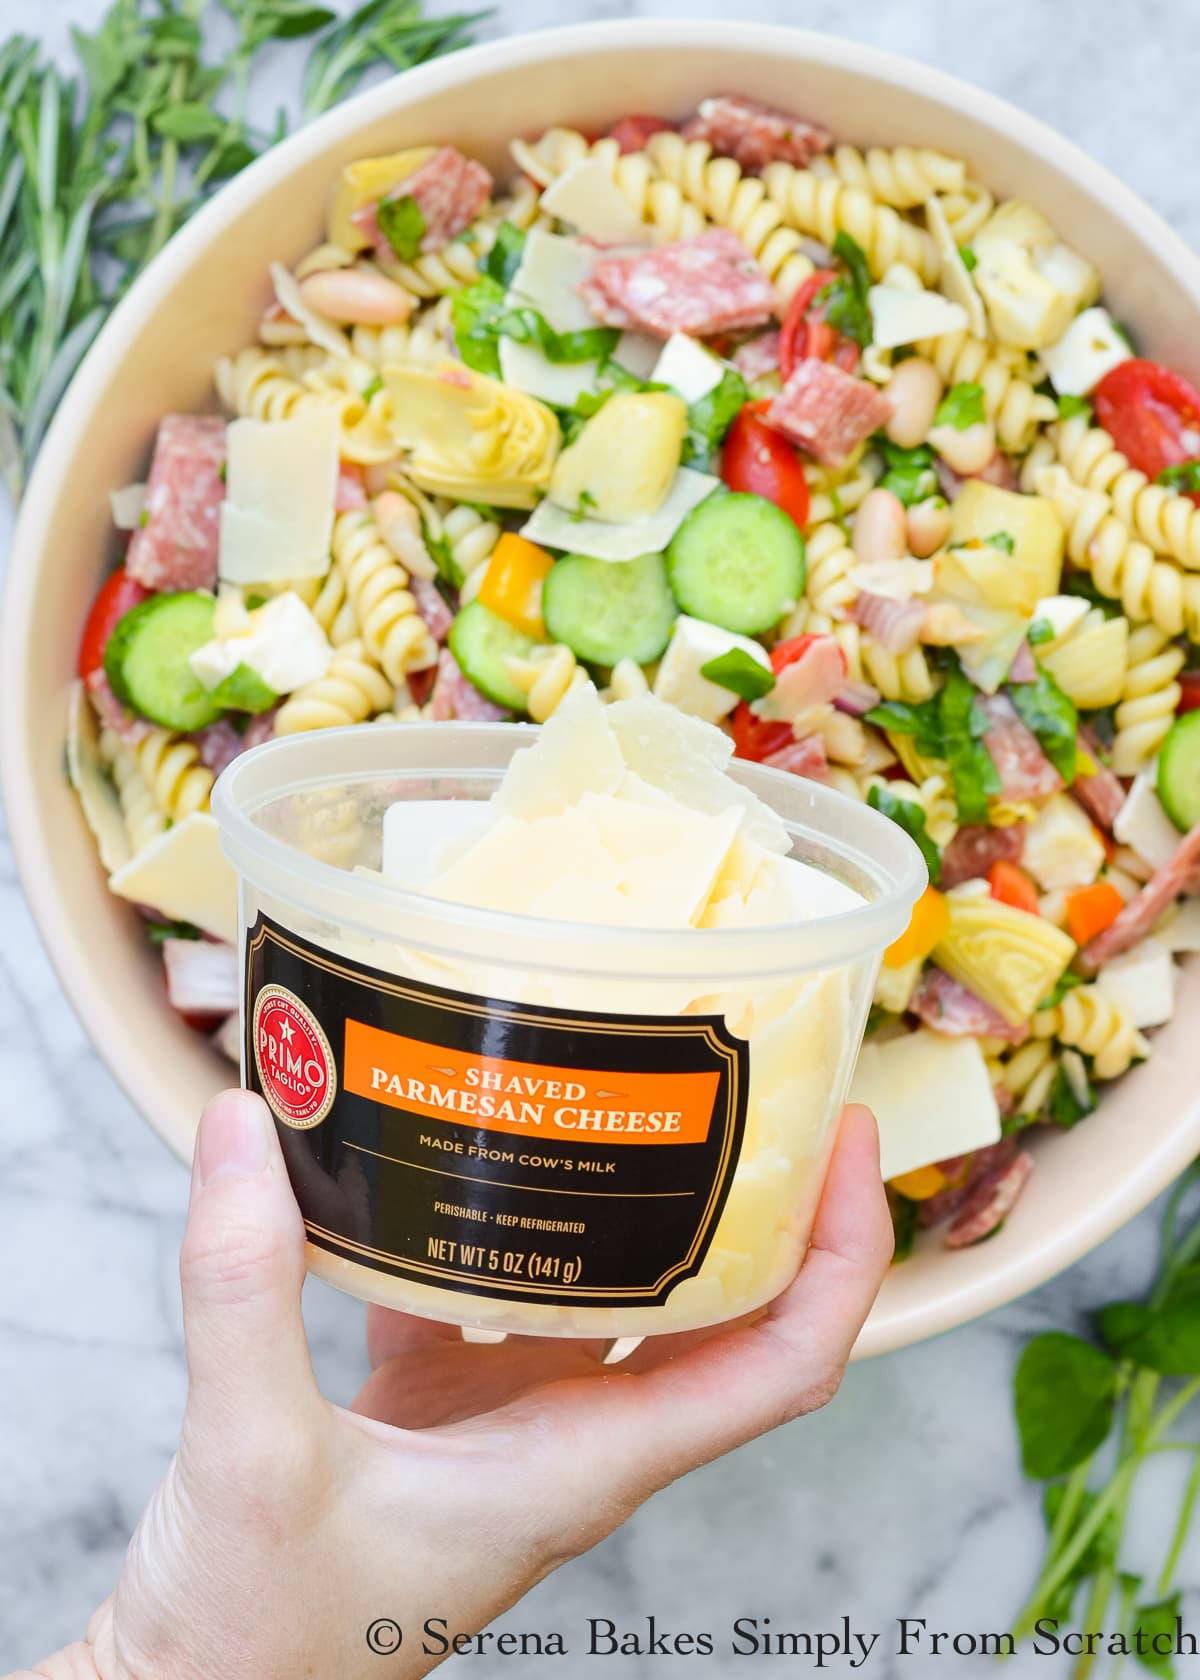 A plastic container of shaved Parmesan cheese being held by a hand holding it with a bowl of White Bean Salami Pasta Salad in the background.